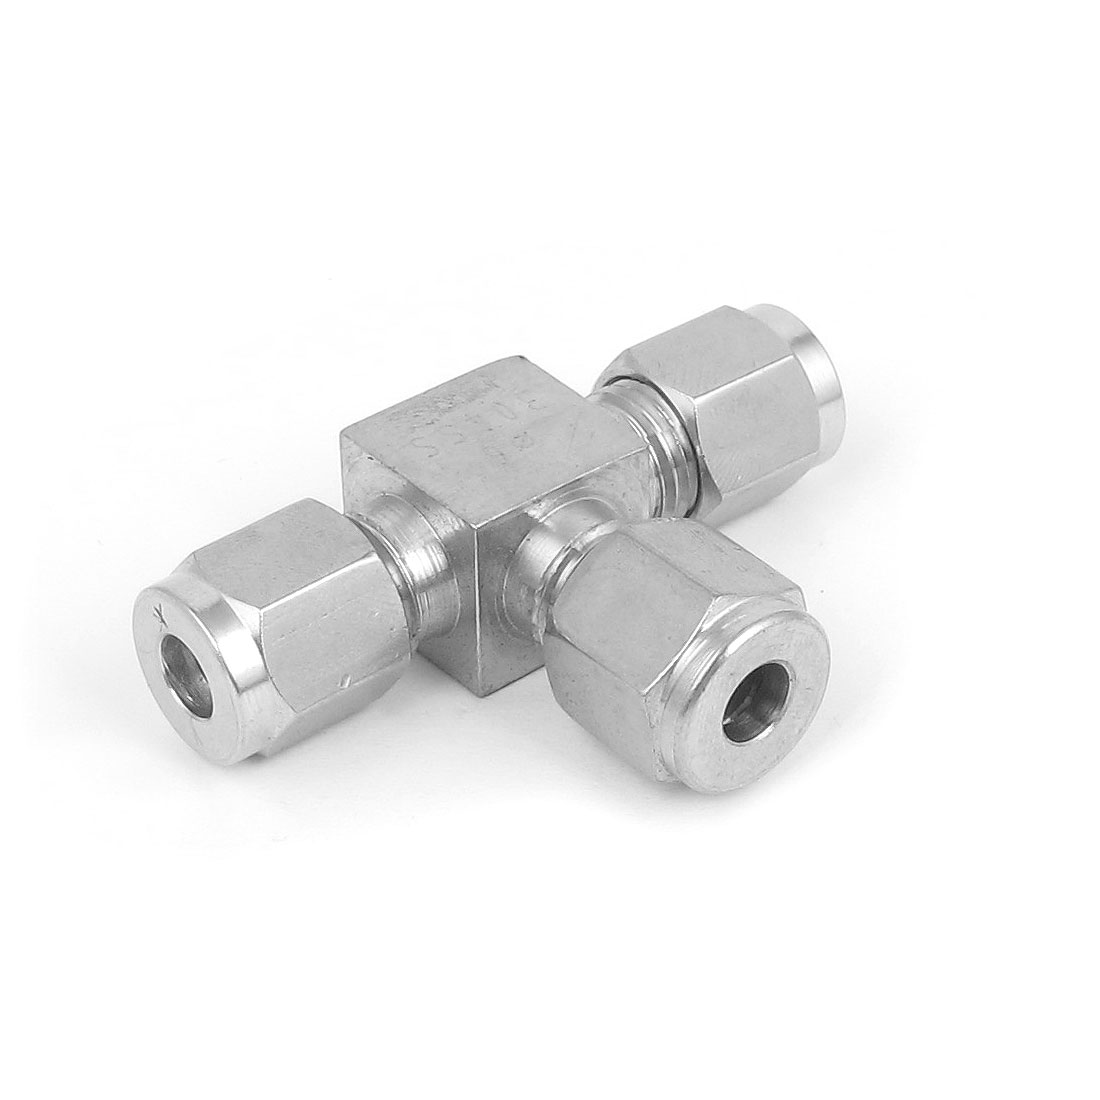 6mm Tube 3 Ways T Shape 304 Stainless Steel Air Quick Coupler Connector